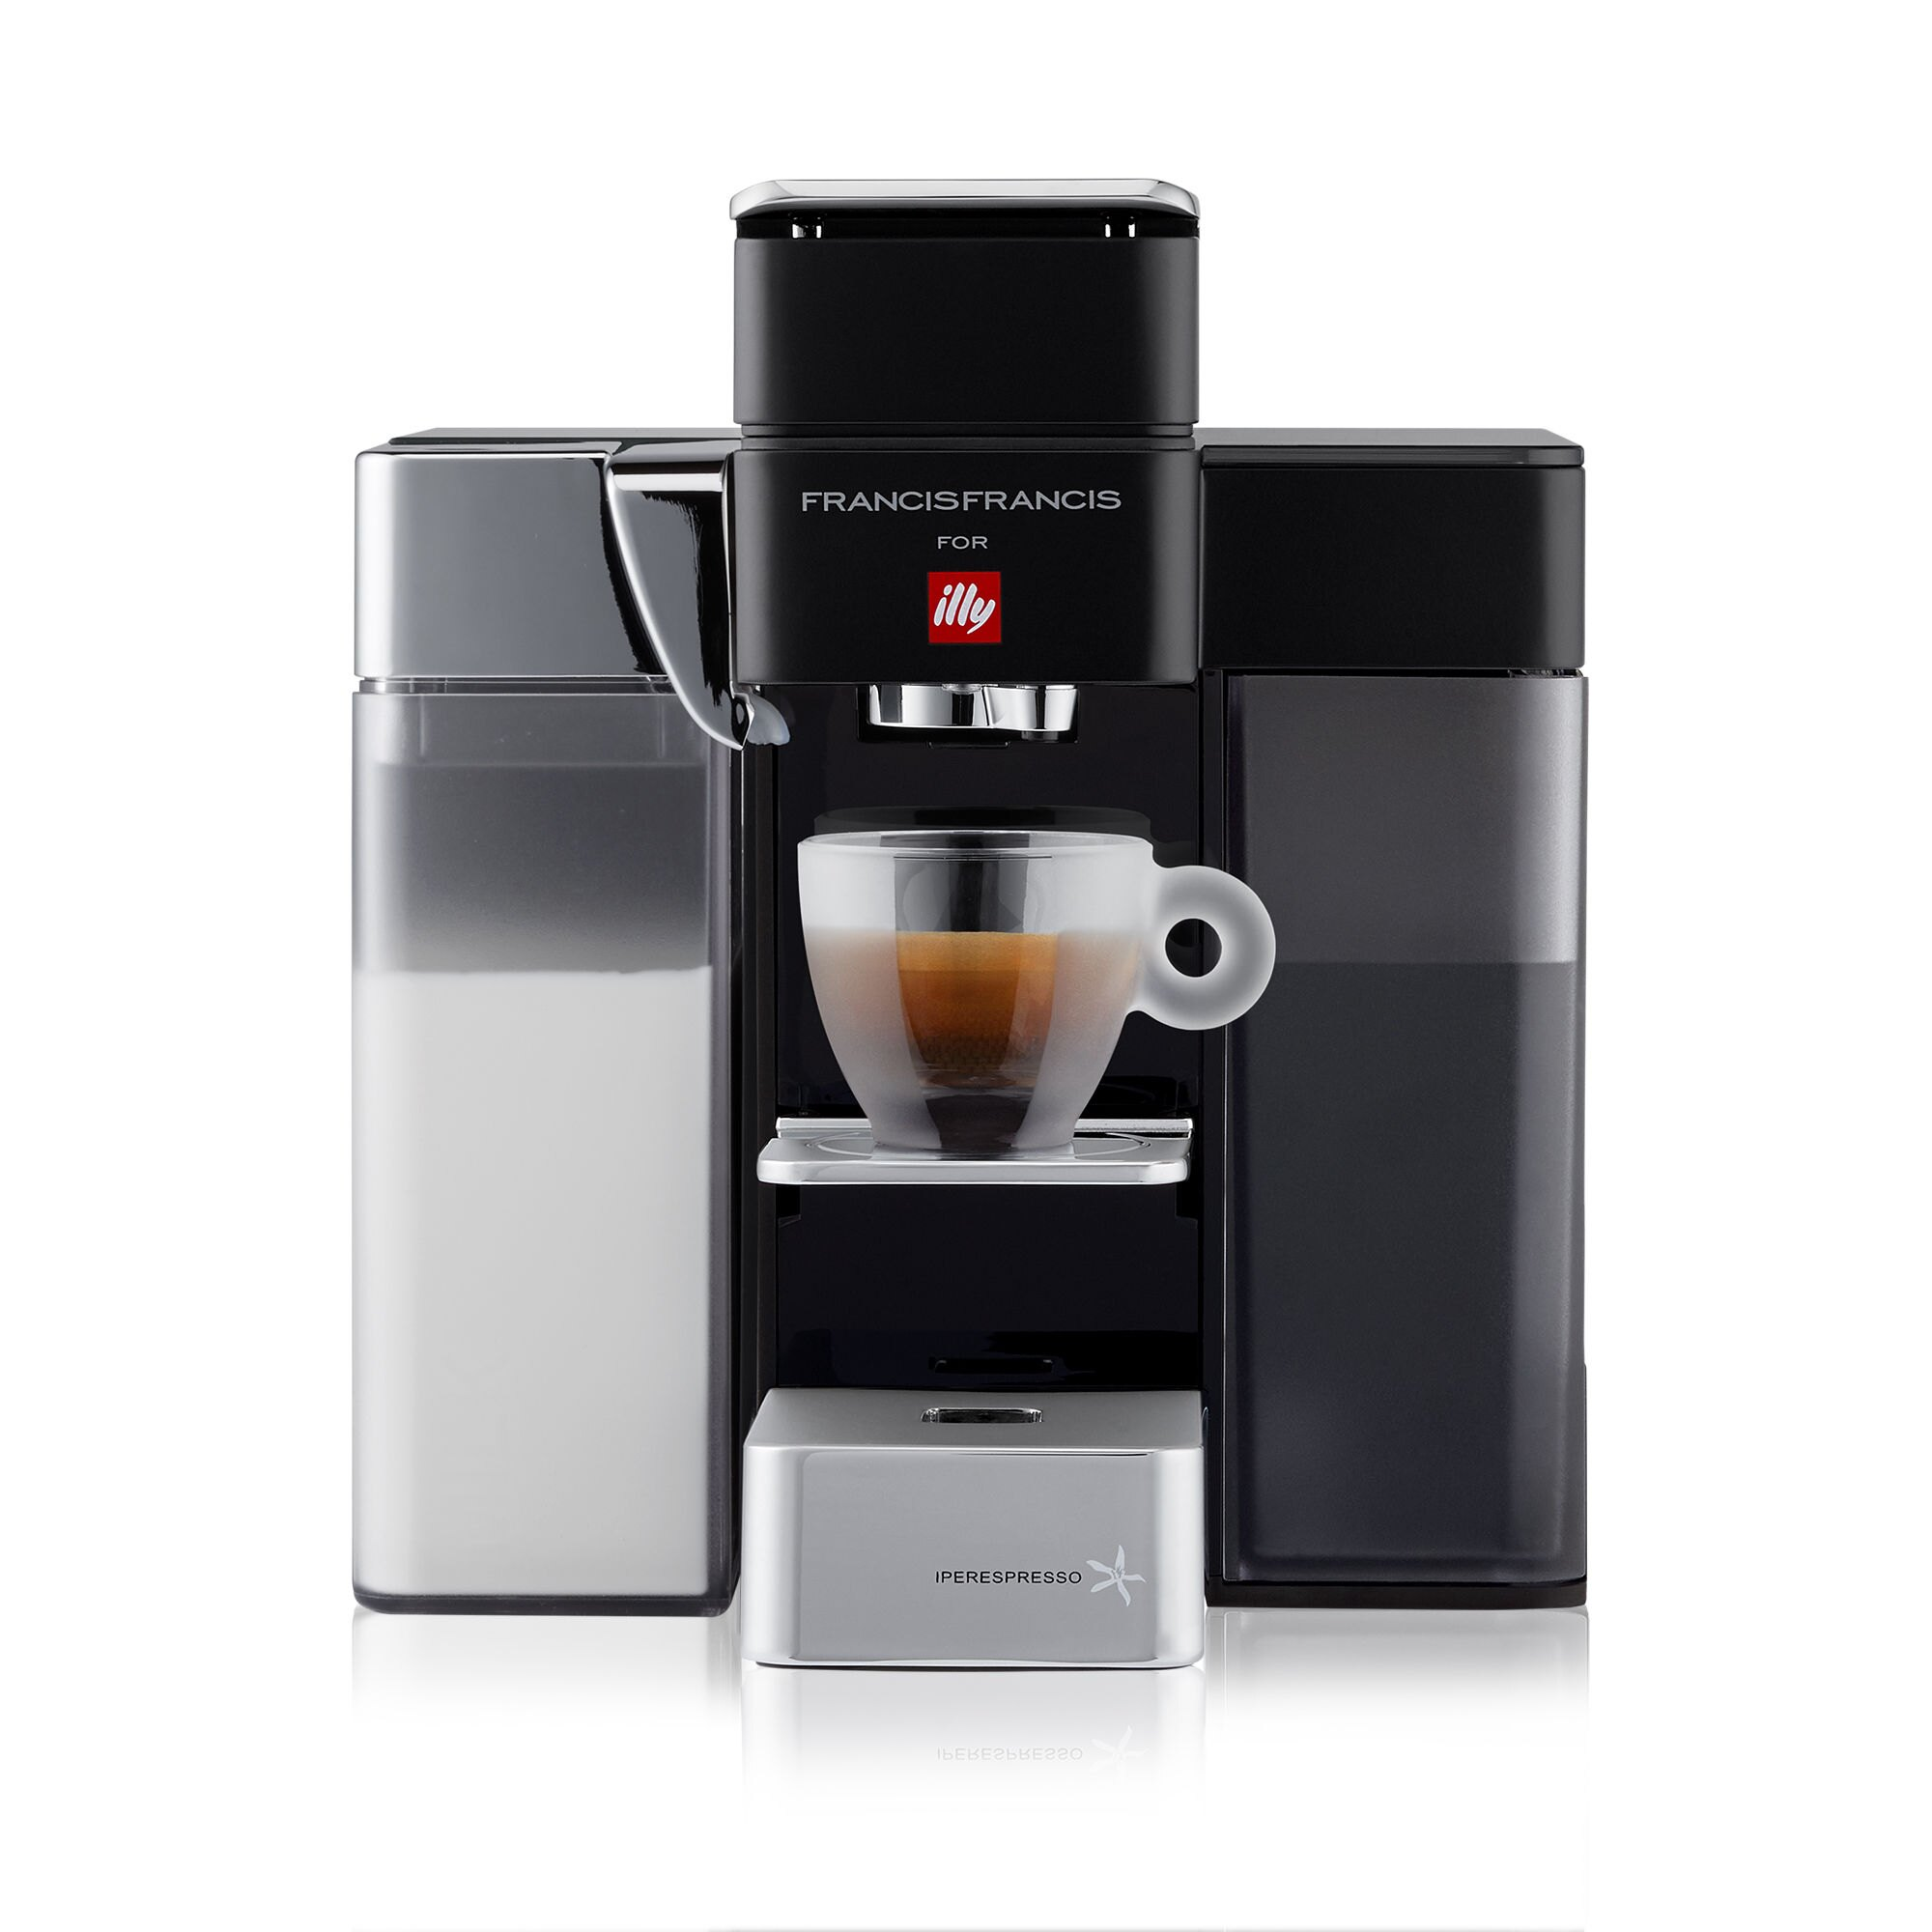 francis francis y5 milk espresso coffee machine illy. Black Bedroom Furniture Sets. Home Design Ideas